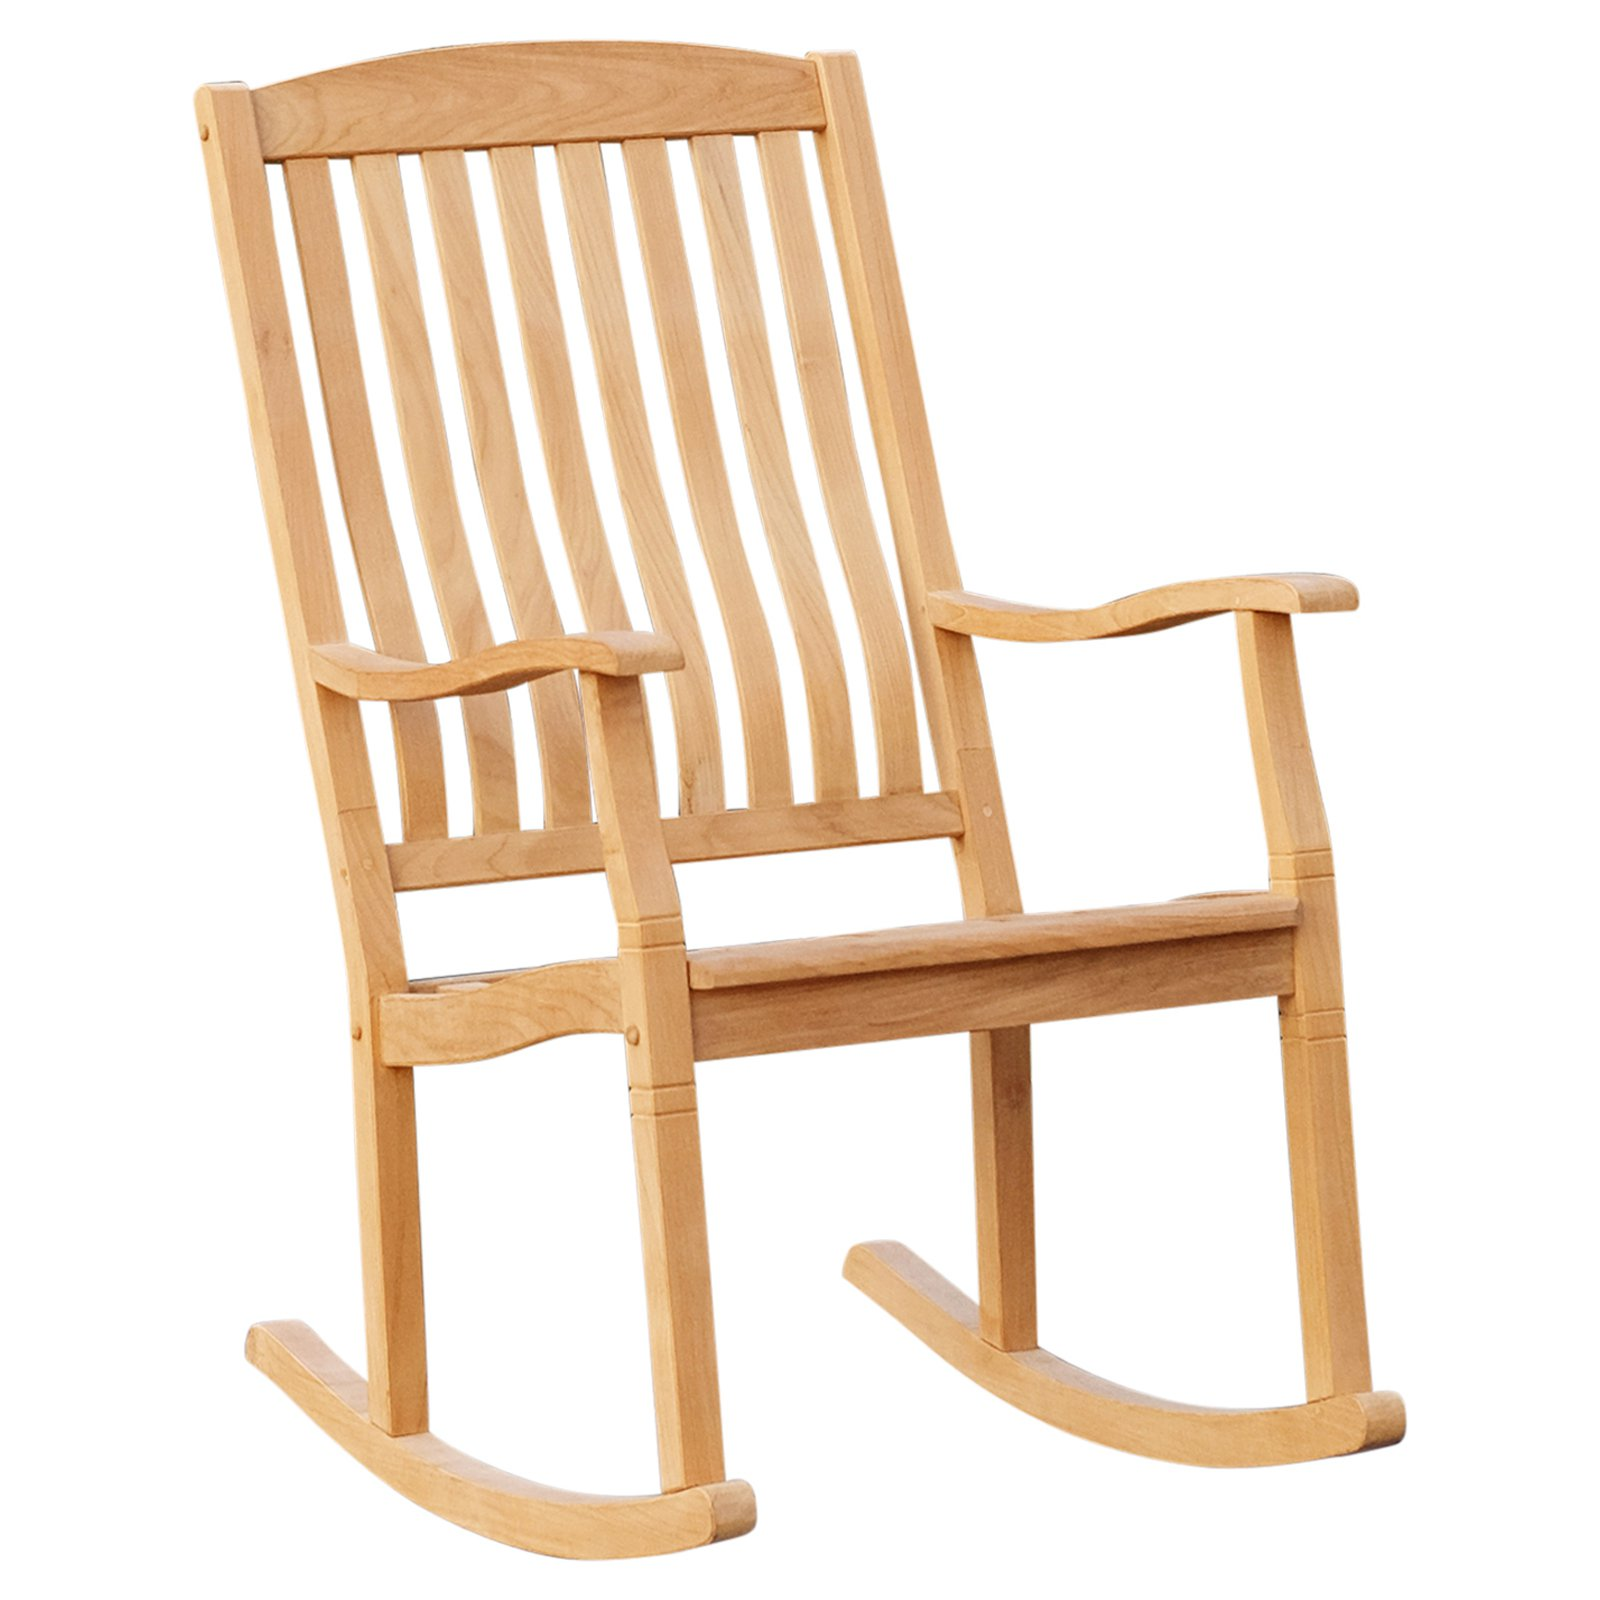 Cambridge Casual Teak Rocking Chair